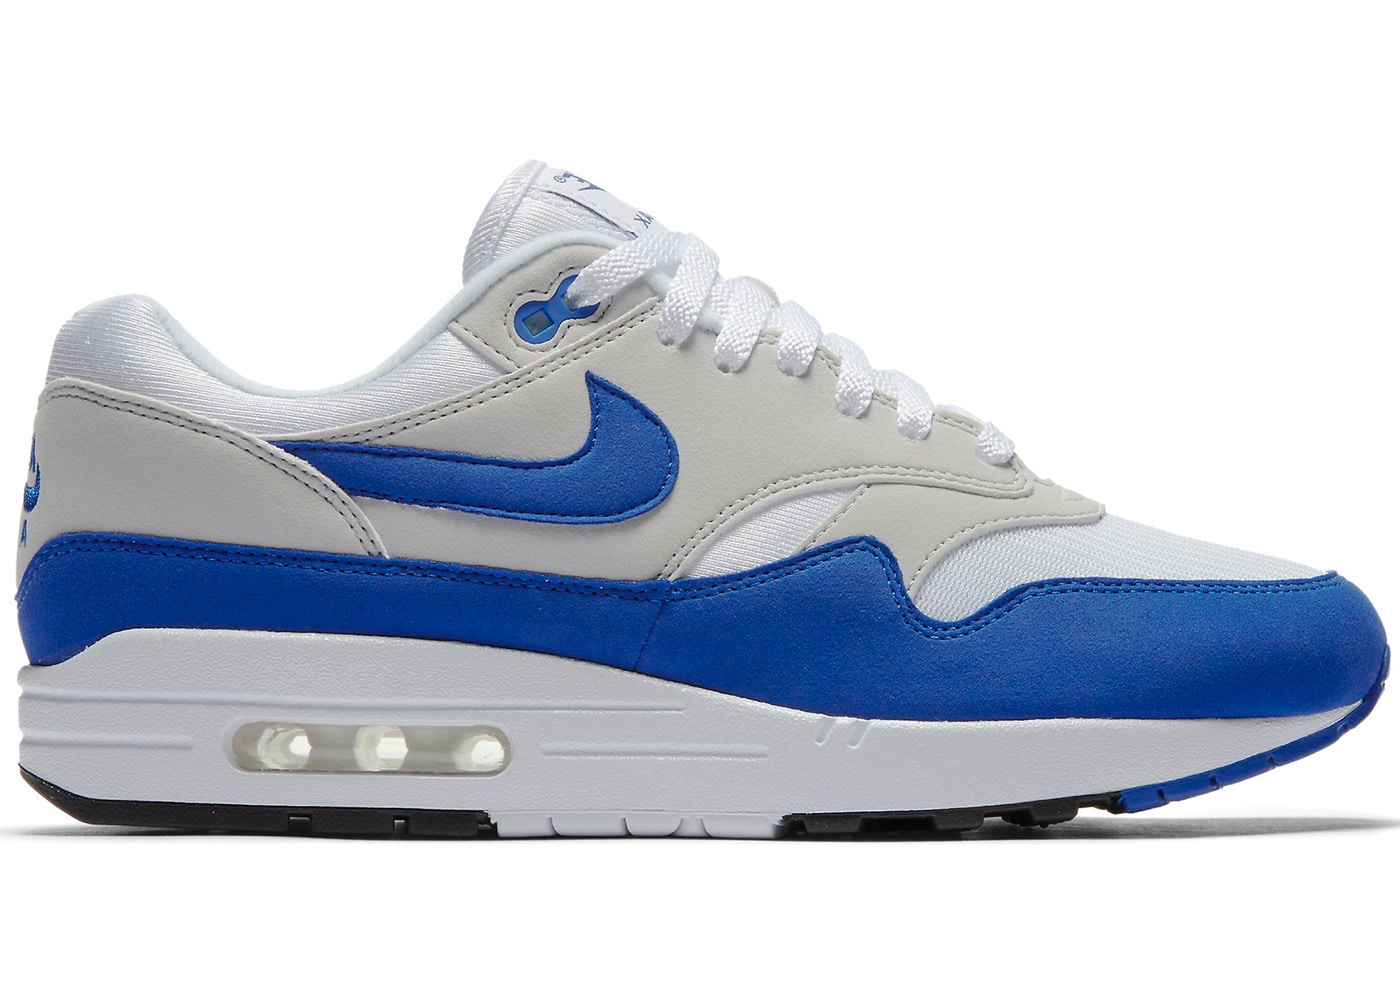 ny kollektion officiell webbplats grossist online Nike Air Max 1 Anniversary Royal (2017) - 908375-101